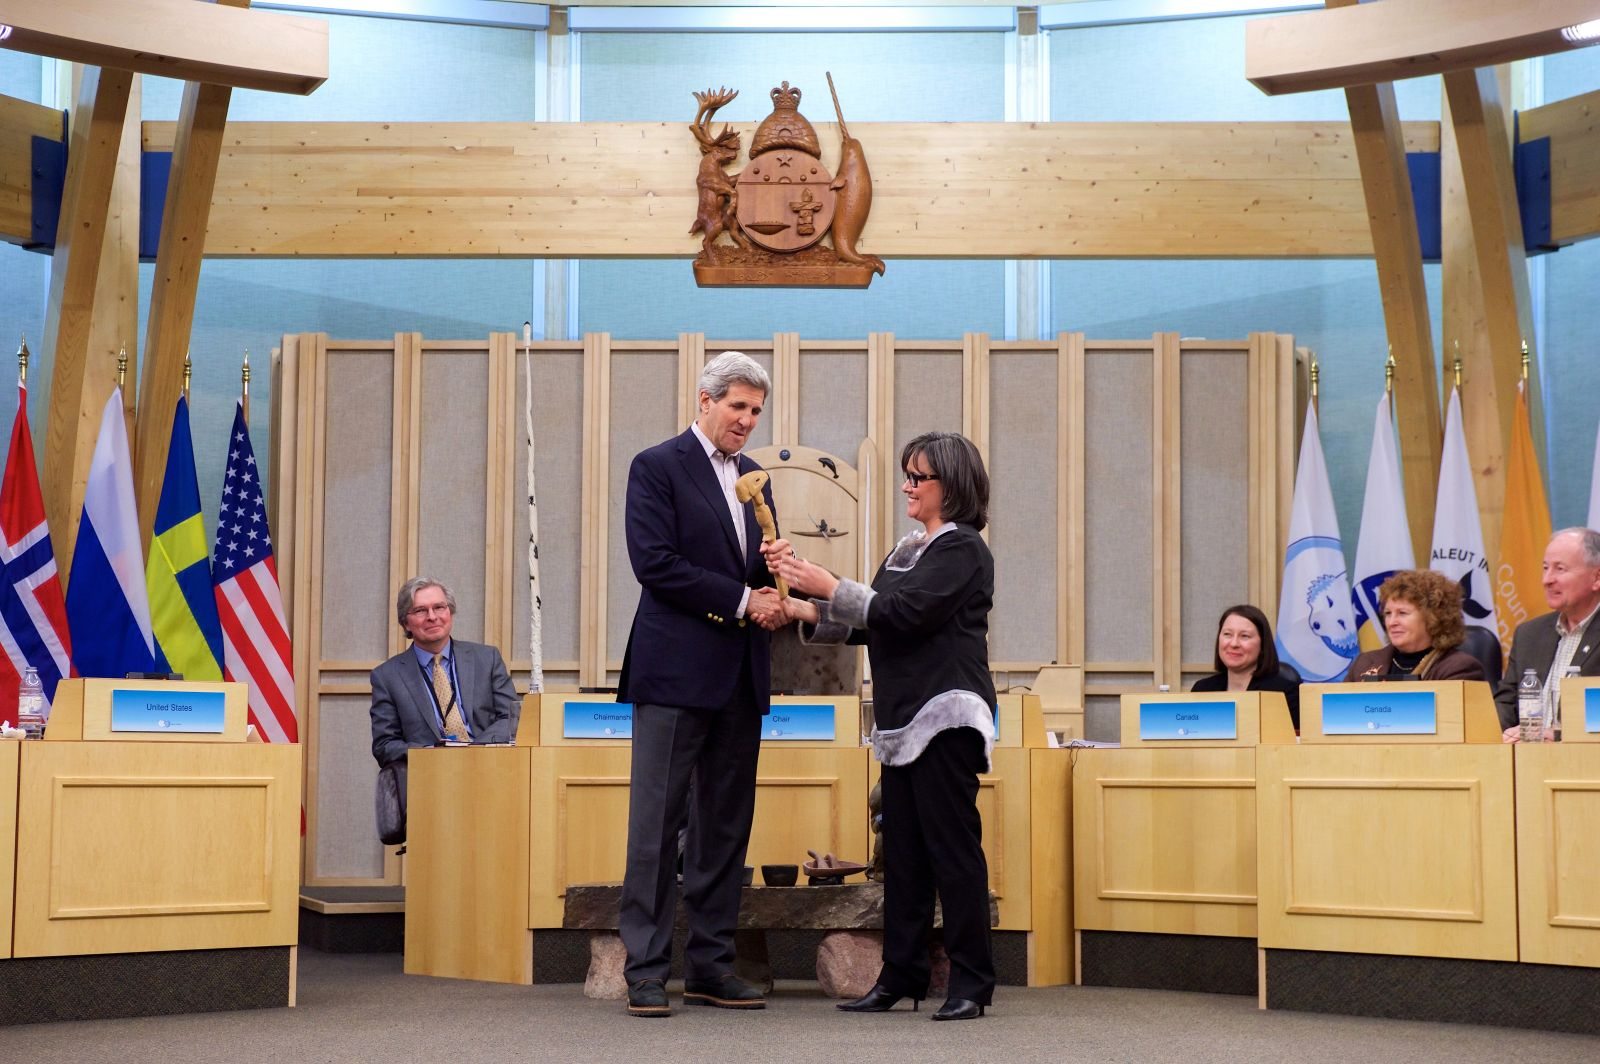 Arctic_Council_Chairman_Leona_Aglukkaq_of_Canada_Passes_a_Ceremonial_Gavel_to_Secretary_Kerry.jpg